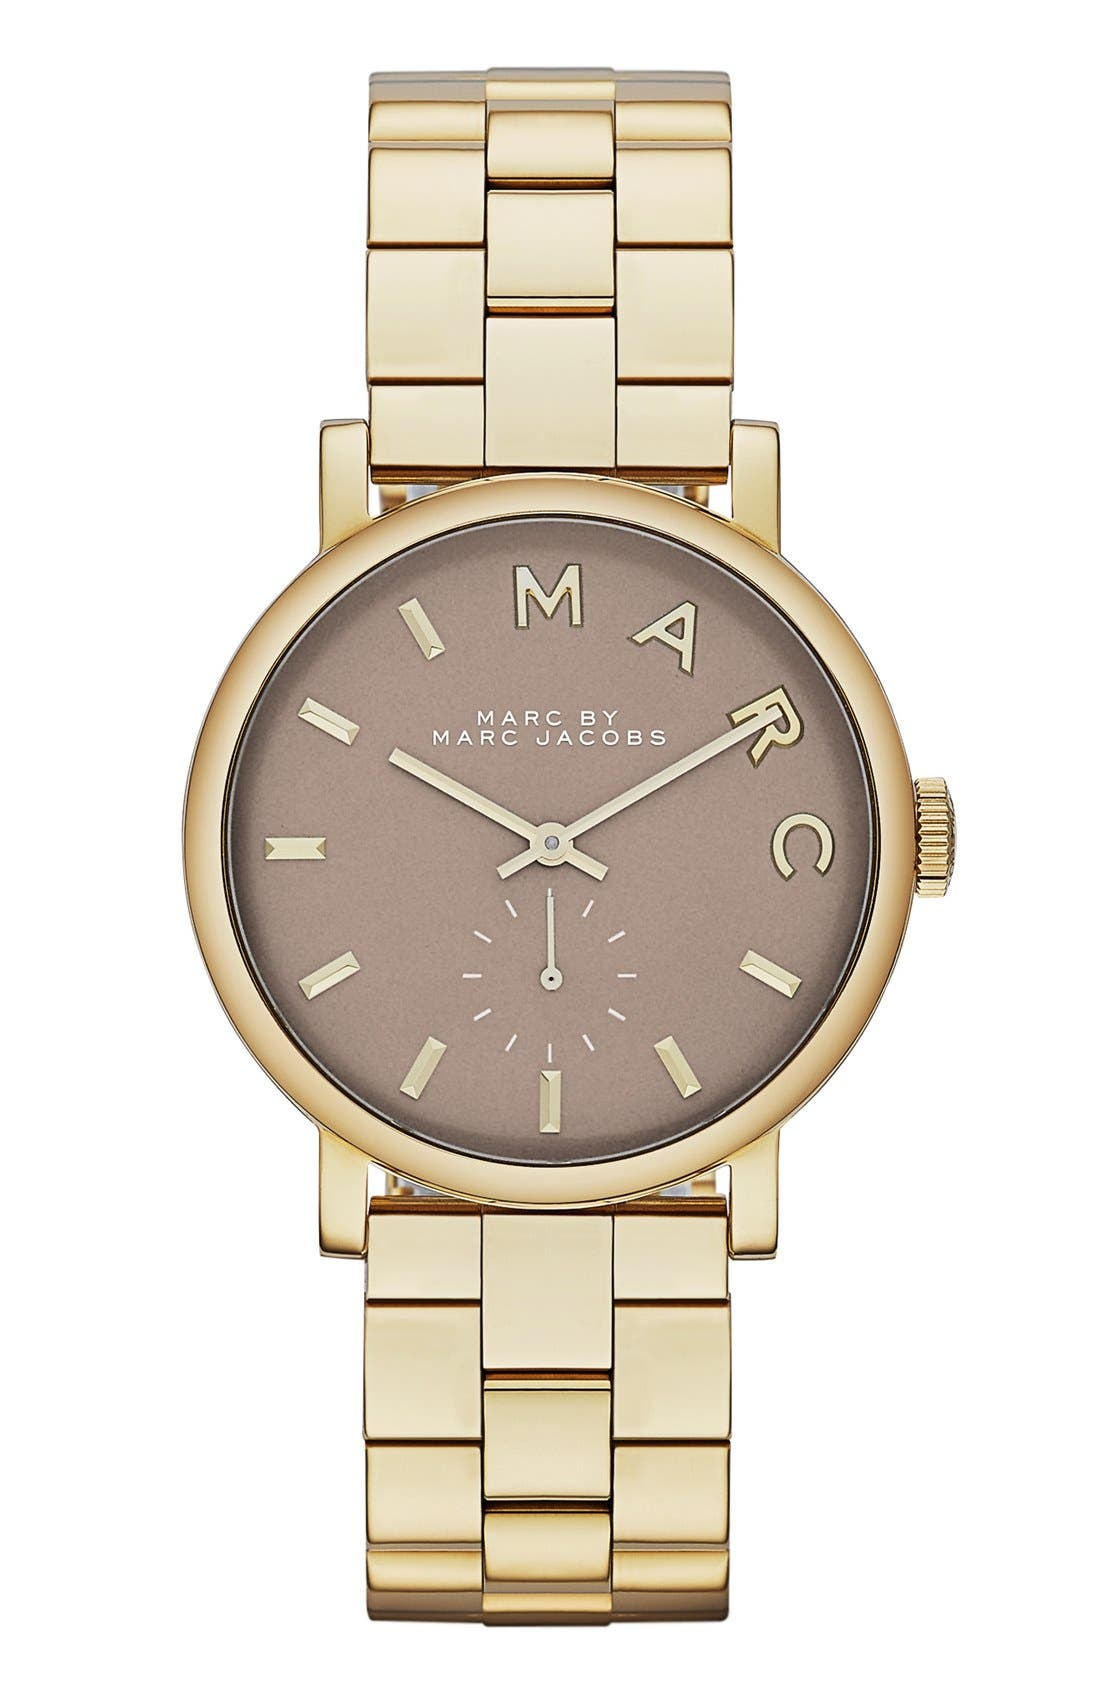 Main Image - MARC JACOBS 'Baker' Bracelet Watch, 37mm